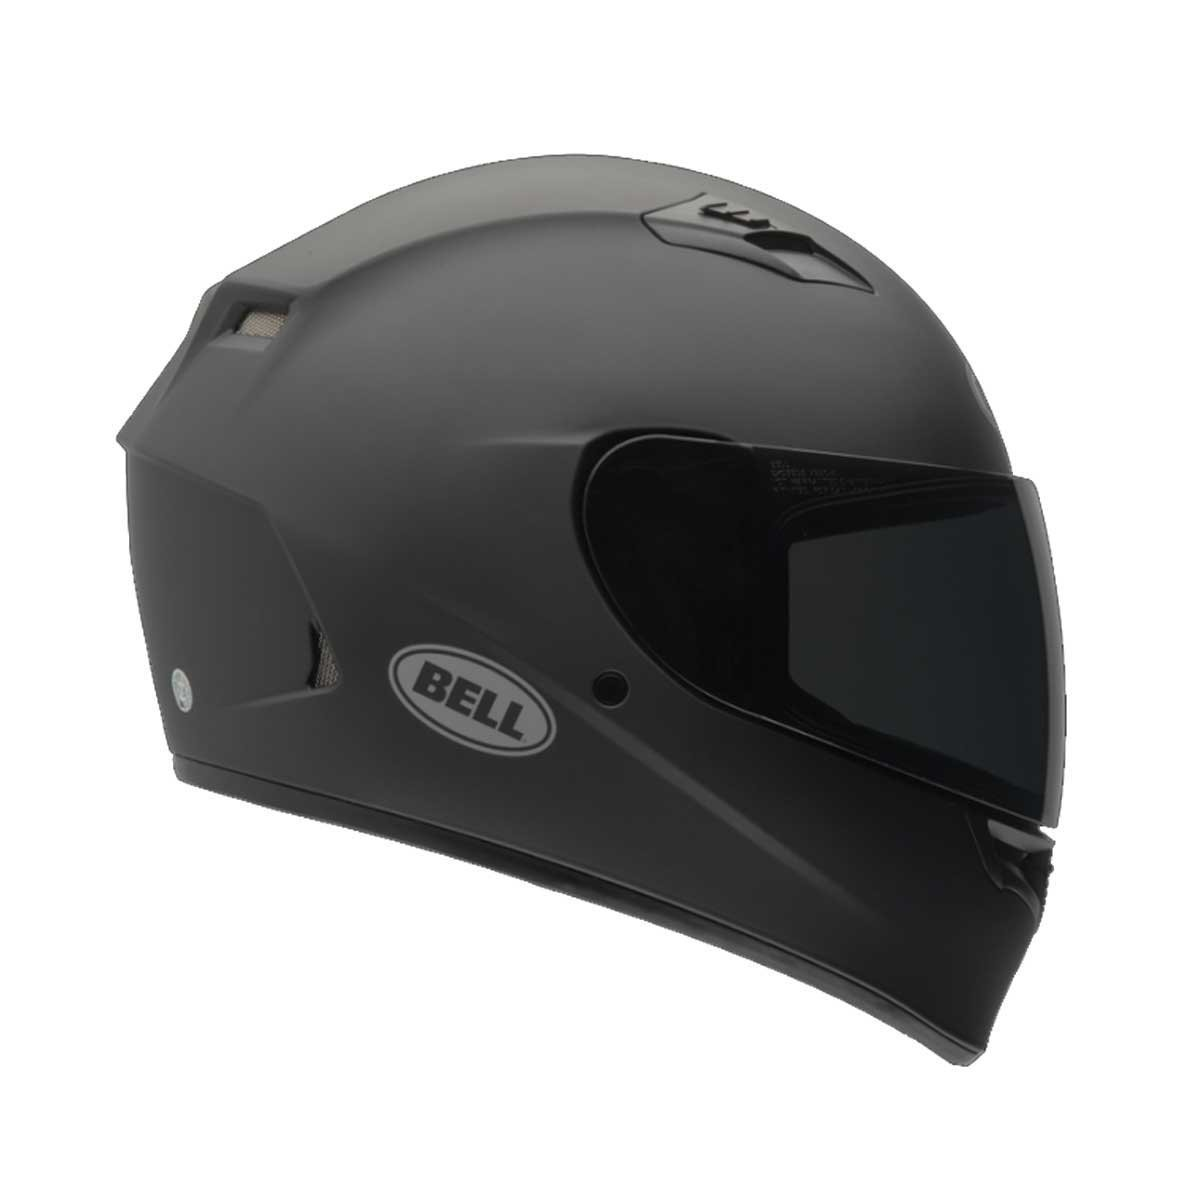 Best Motorcycle Helmets And Brands Ultimate Buyer S Guide